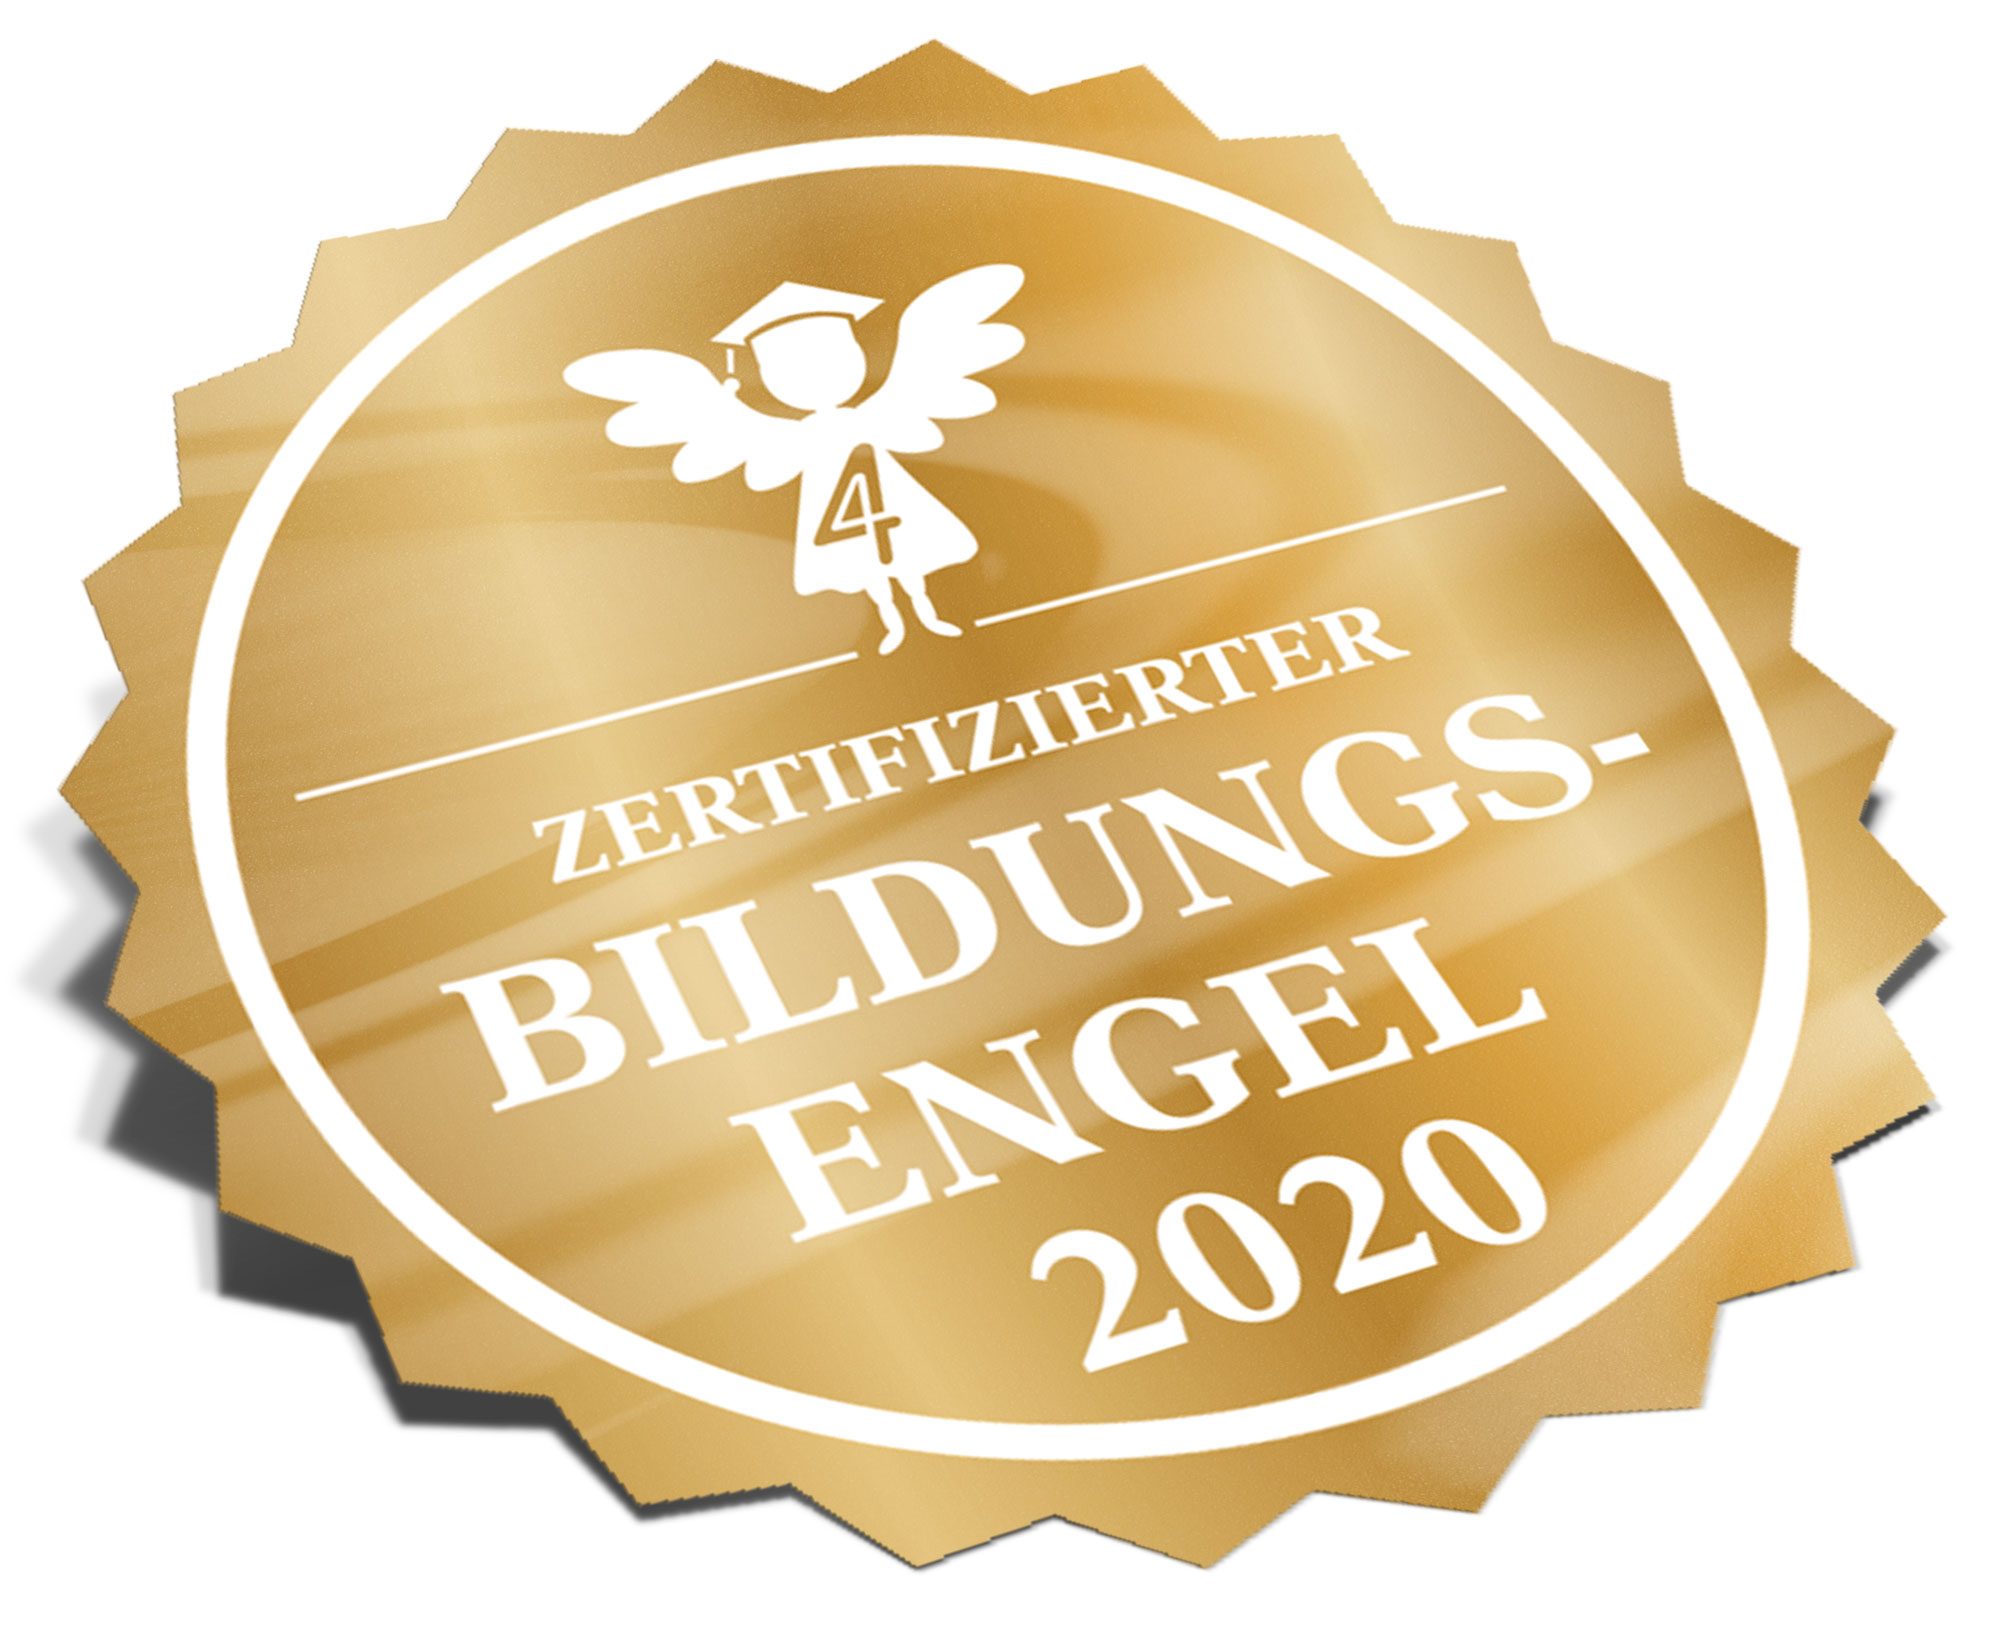 //static.skills4school.de/uploads/sites/2/2020/01/bildungsengel-zertifikat.jpg